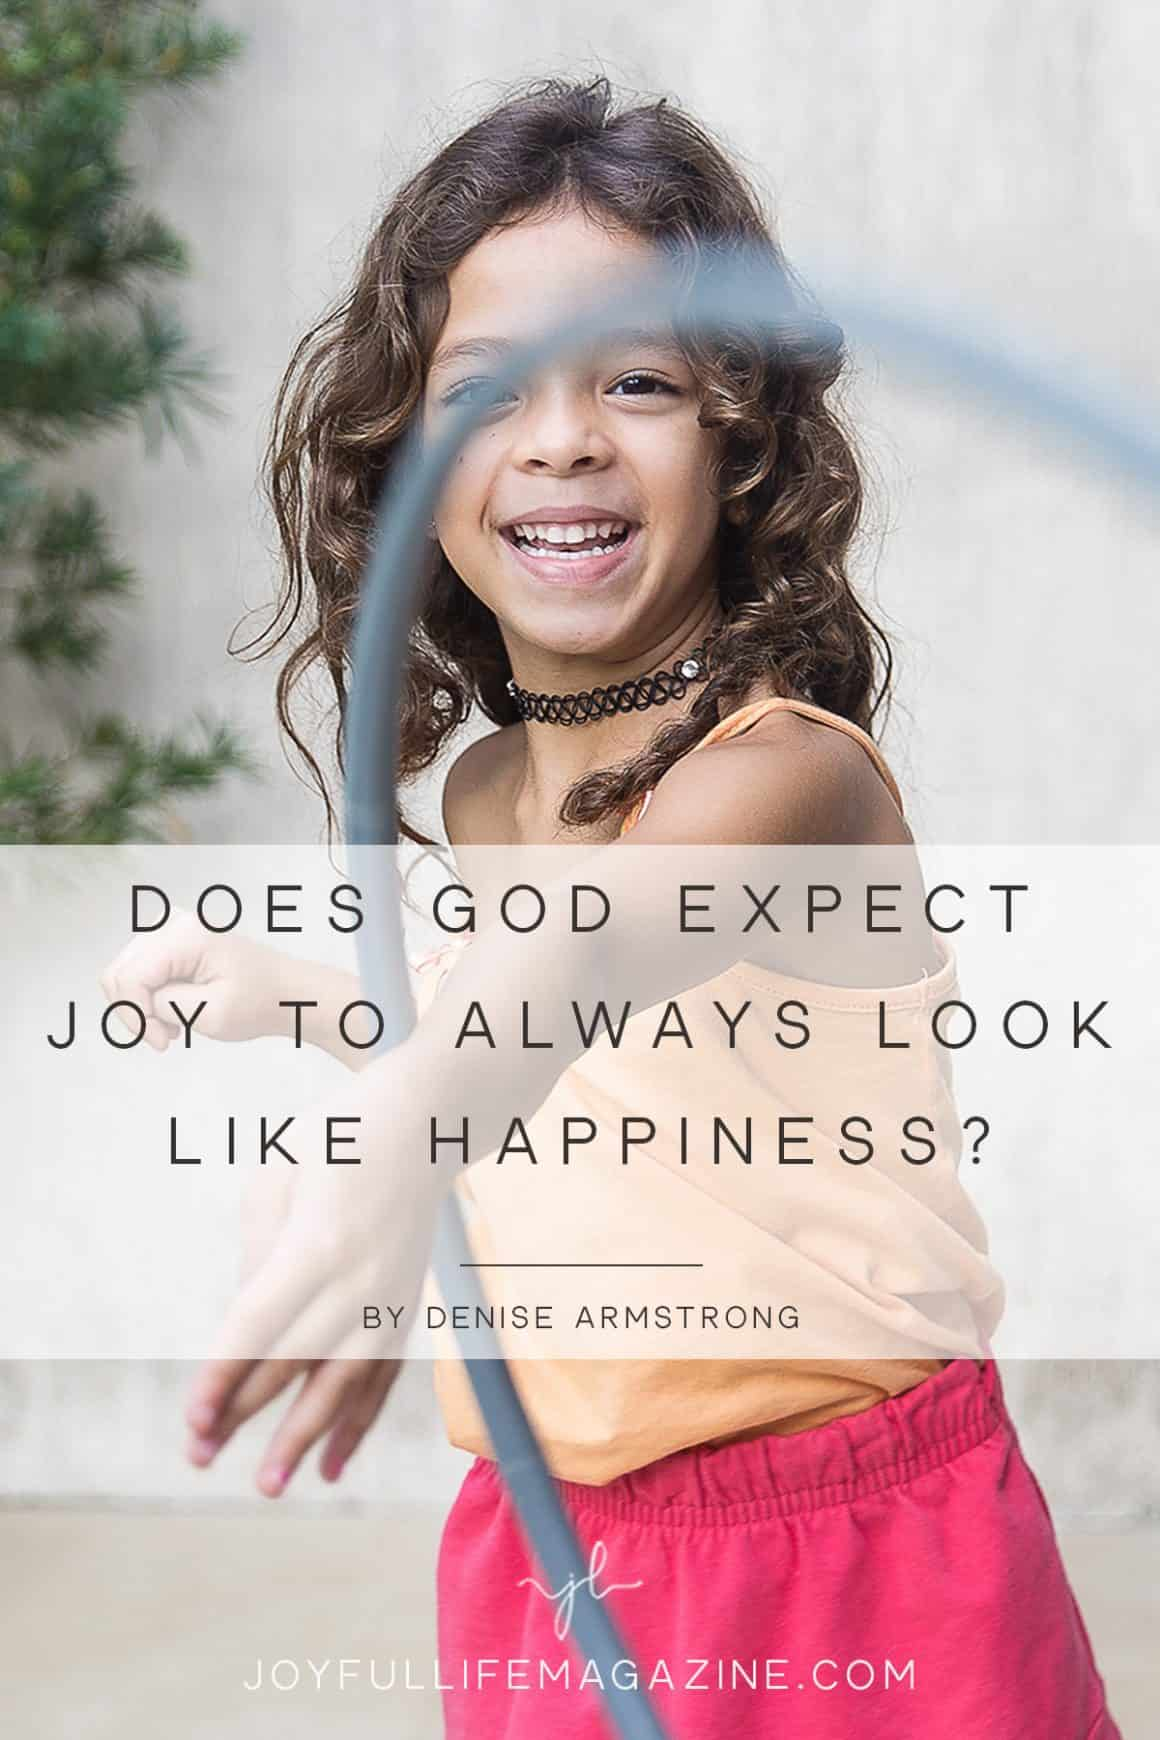 Does God Expect Joy to Always Look Like Happiness? | by Denise Armstrong | The Joyful Life Magazine